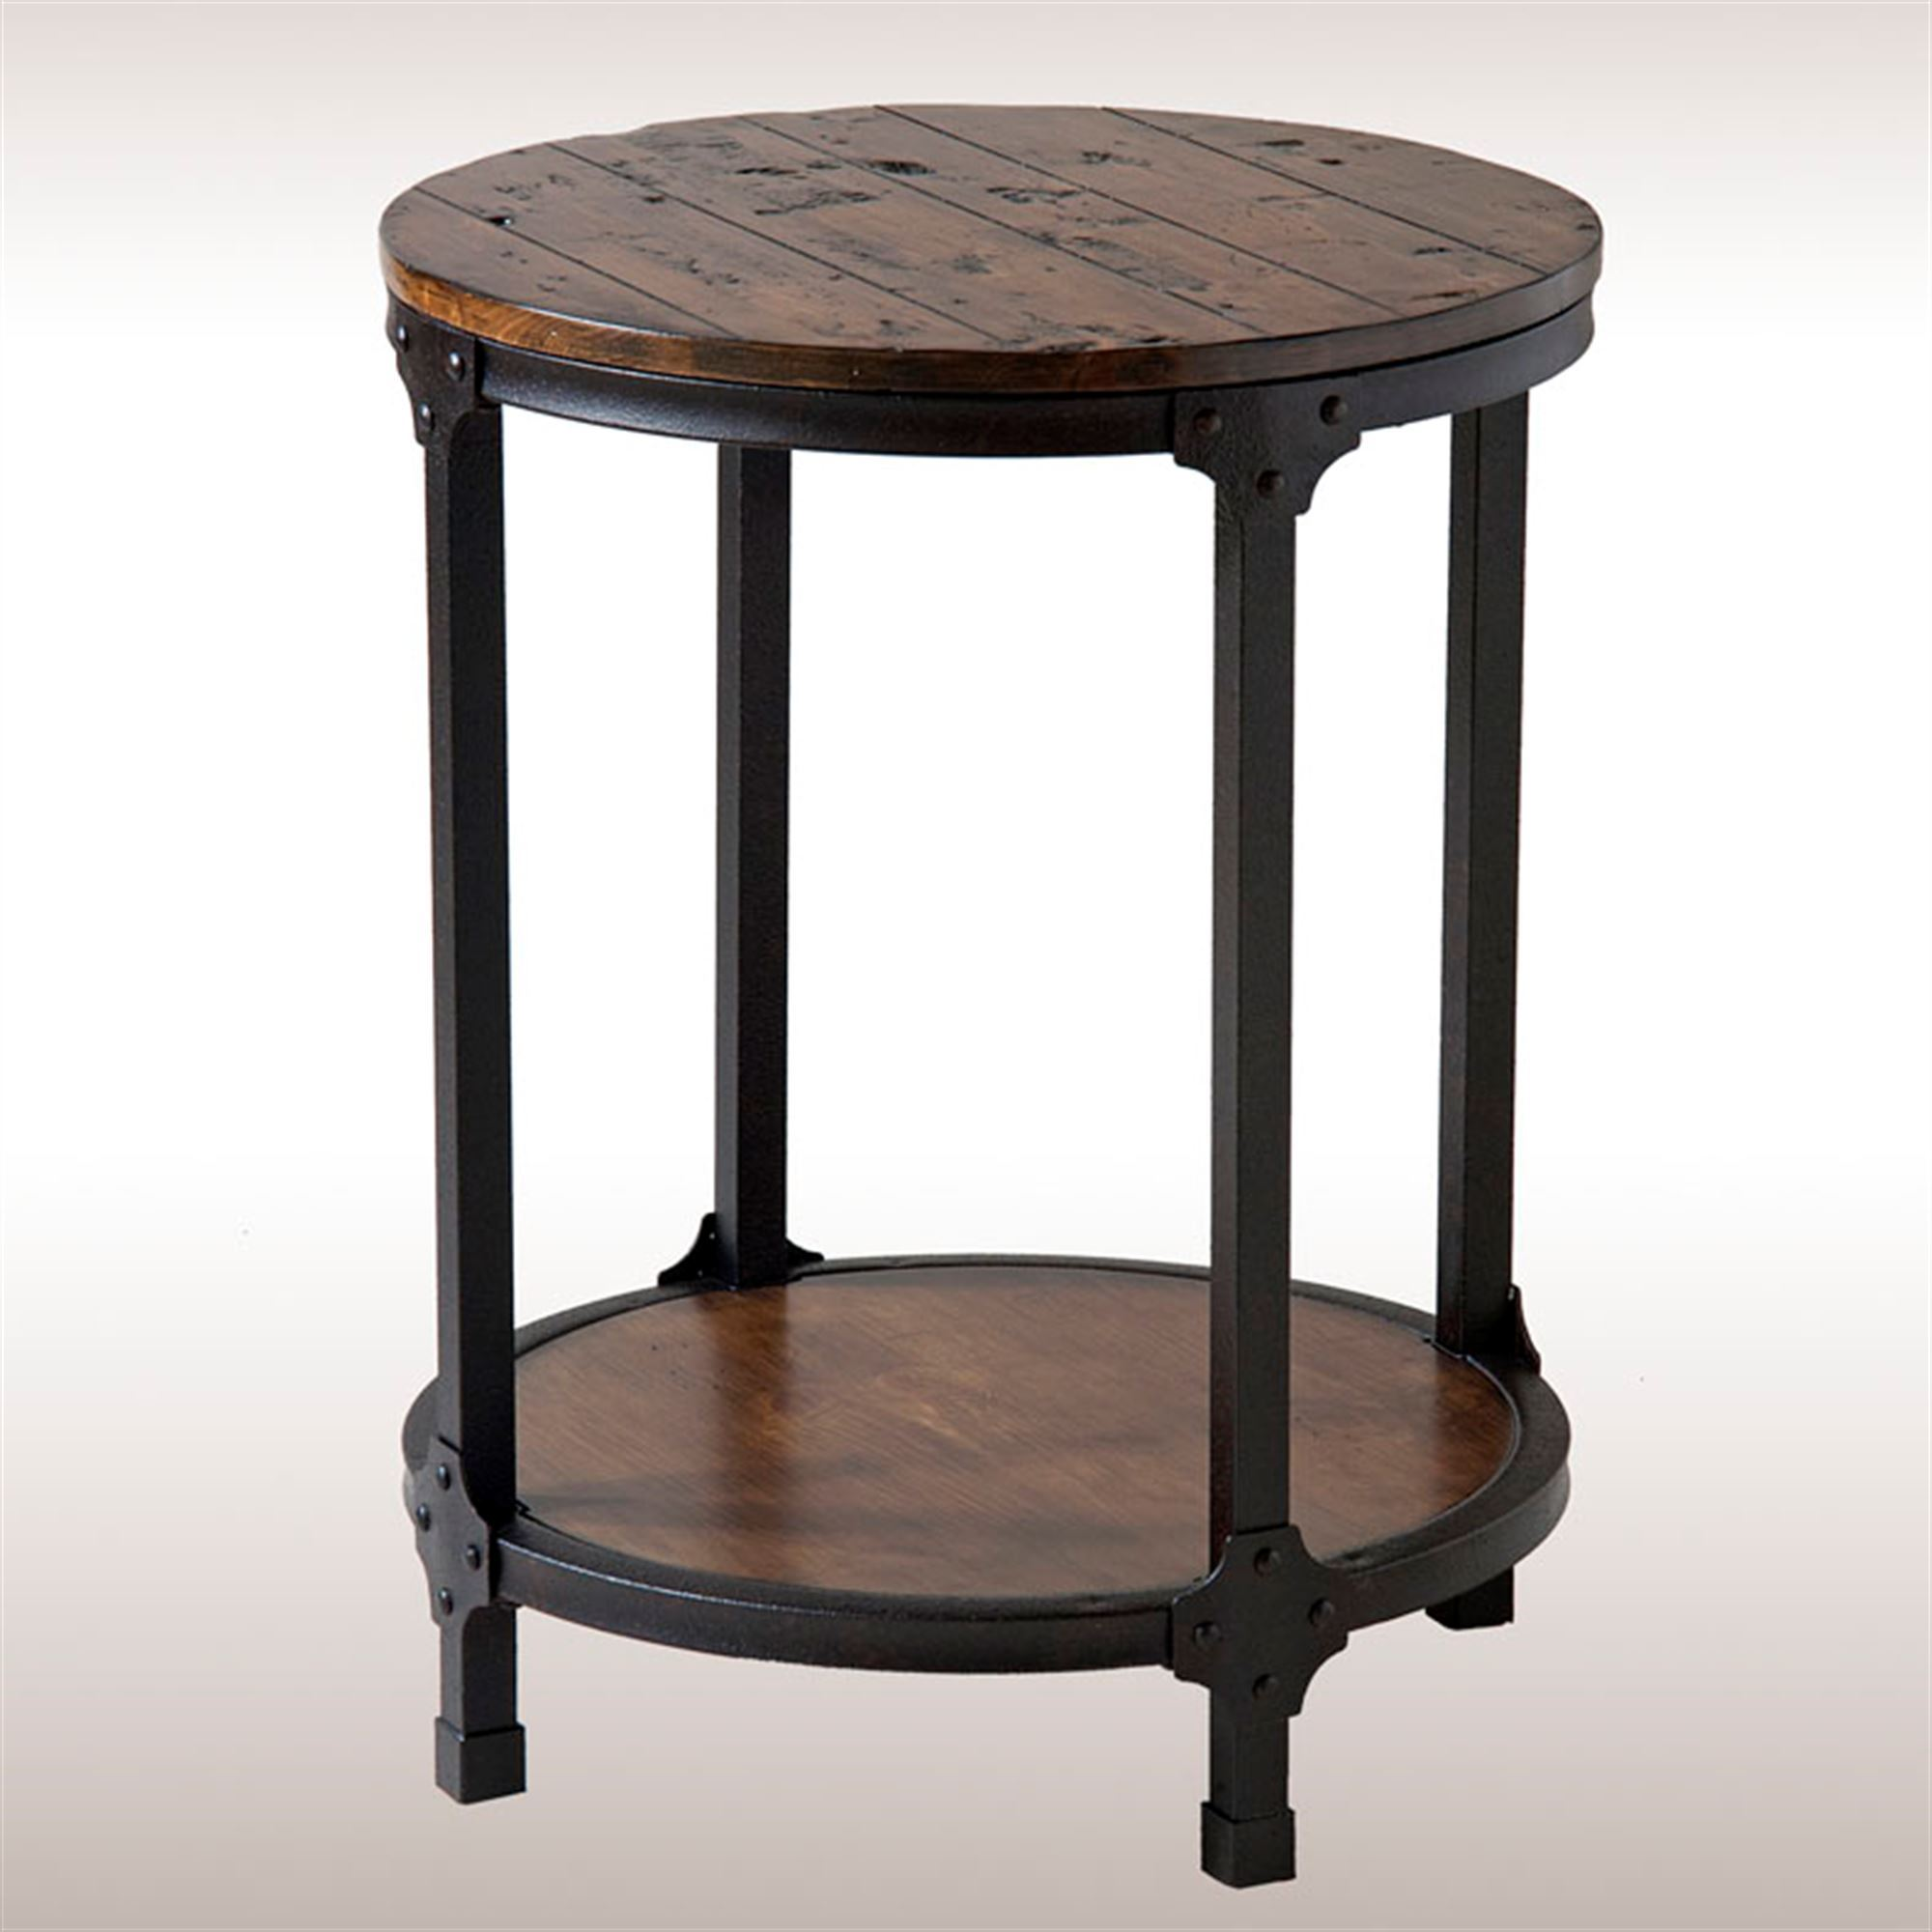 macon rustic round accent table black metal touch zoom ikea narrow end west elm dining room wood furniture battery operated lights lamps cantilever umbrella hammered side silver